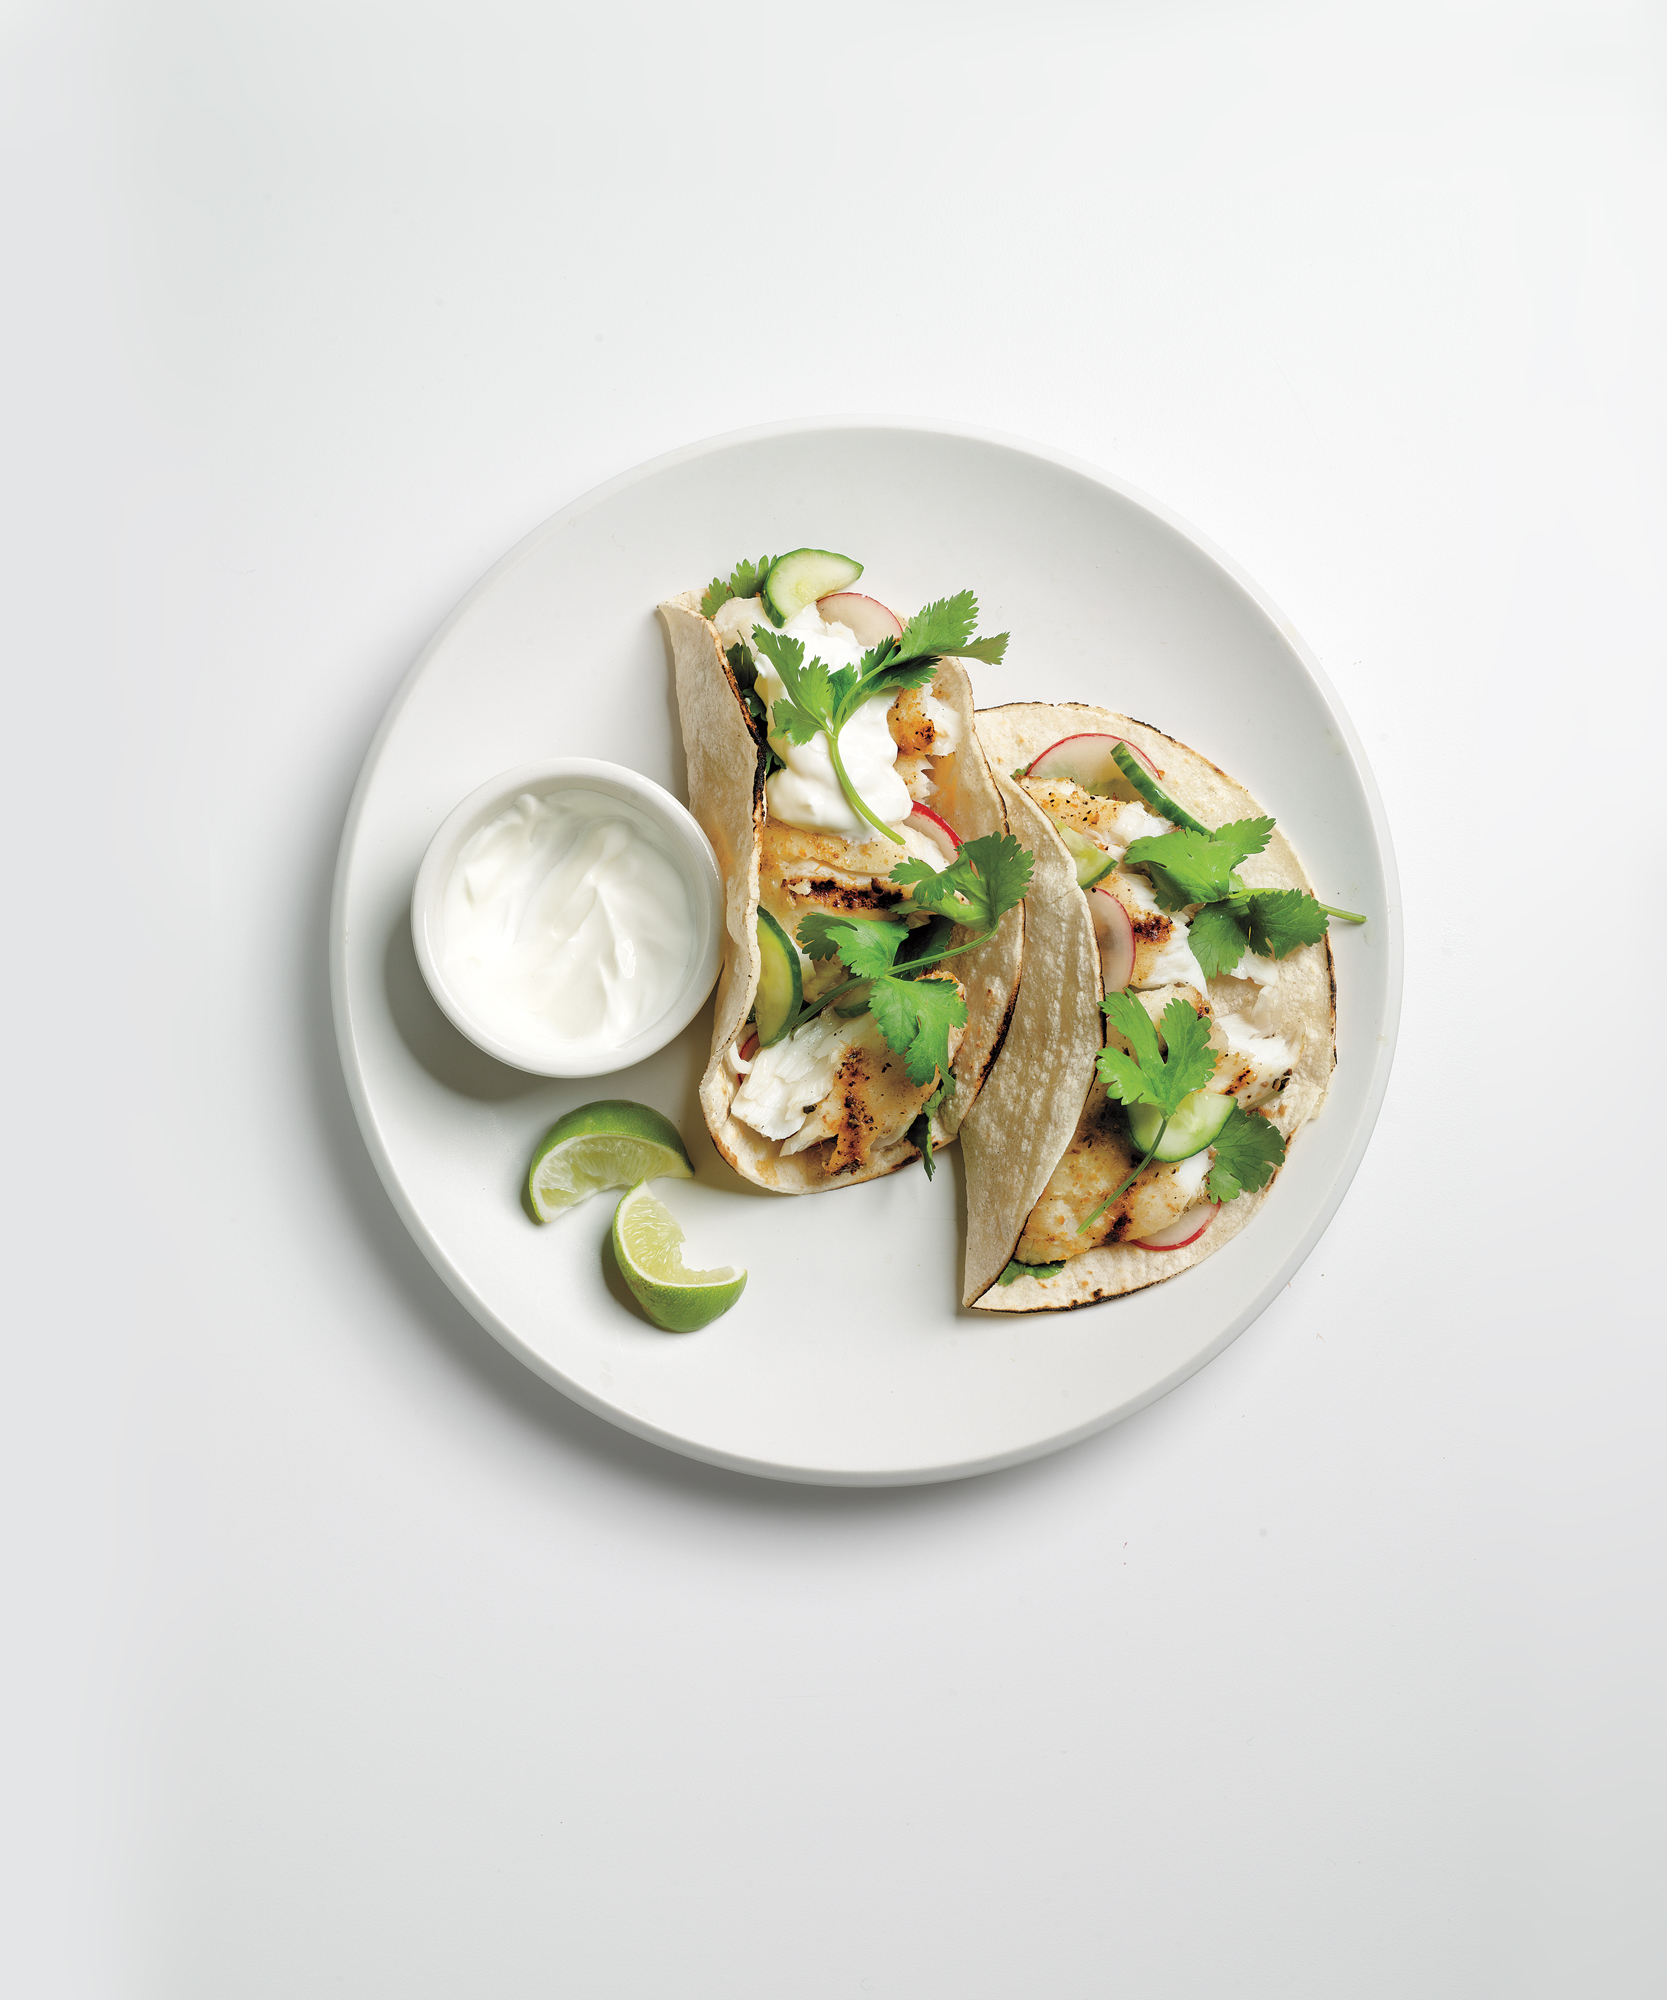 Tilapia Tacos with Cucumber Relish